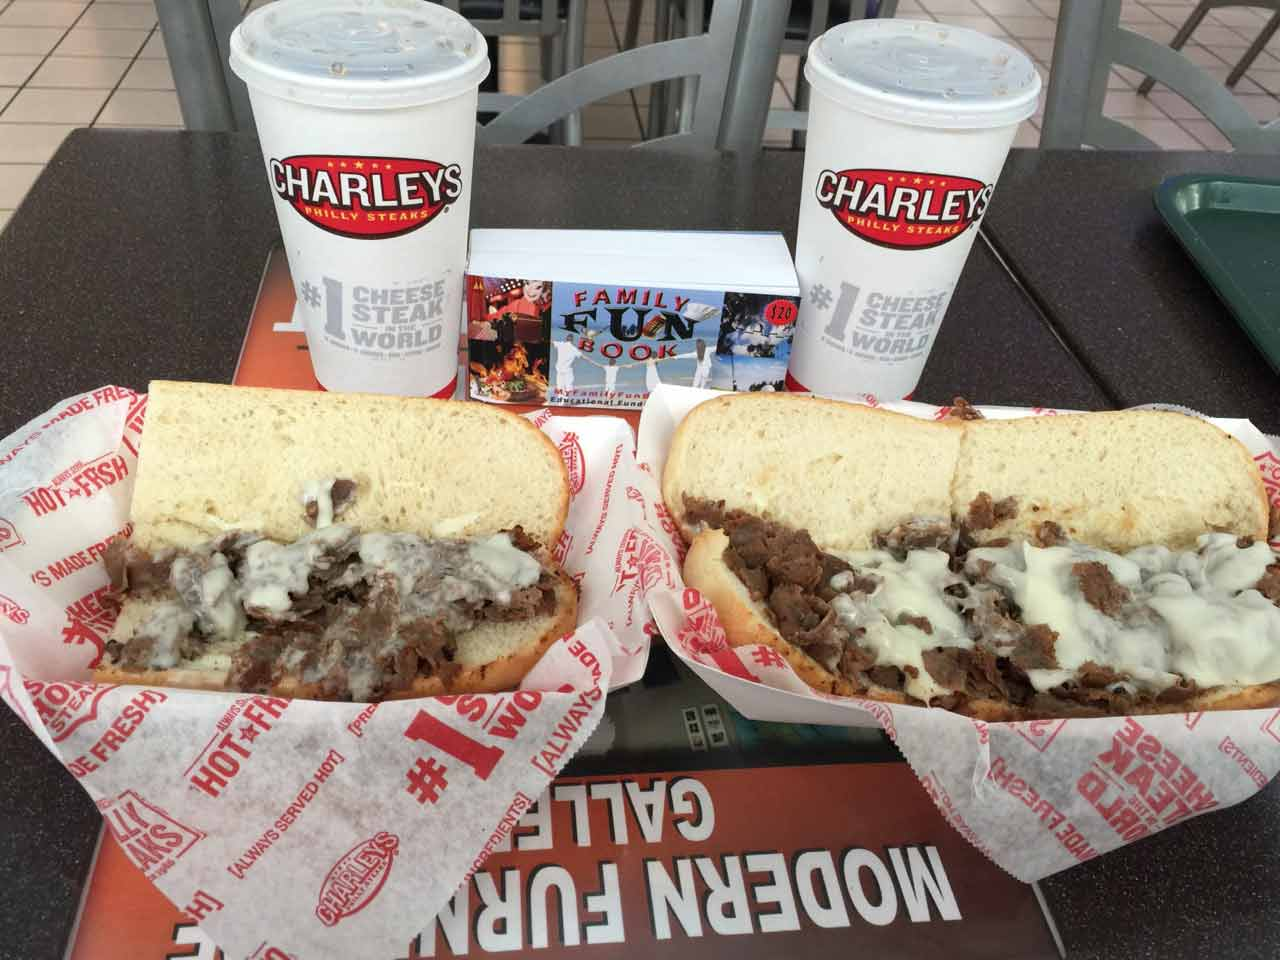 Charley's Crilled Subs food recived with coupon in The Family Fun Book - Sandford Florida